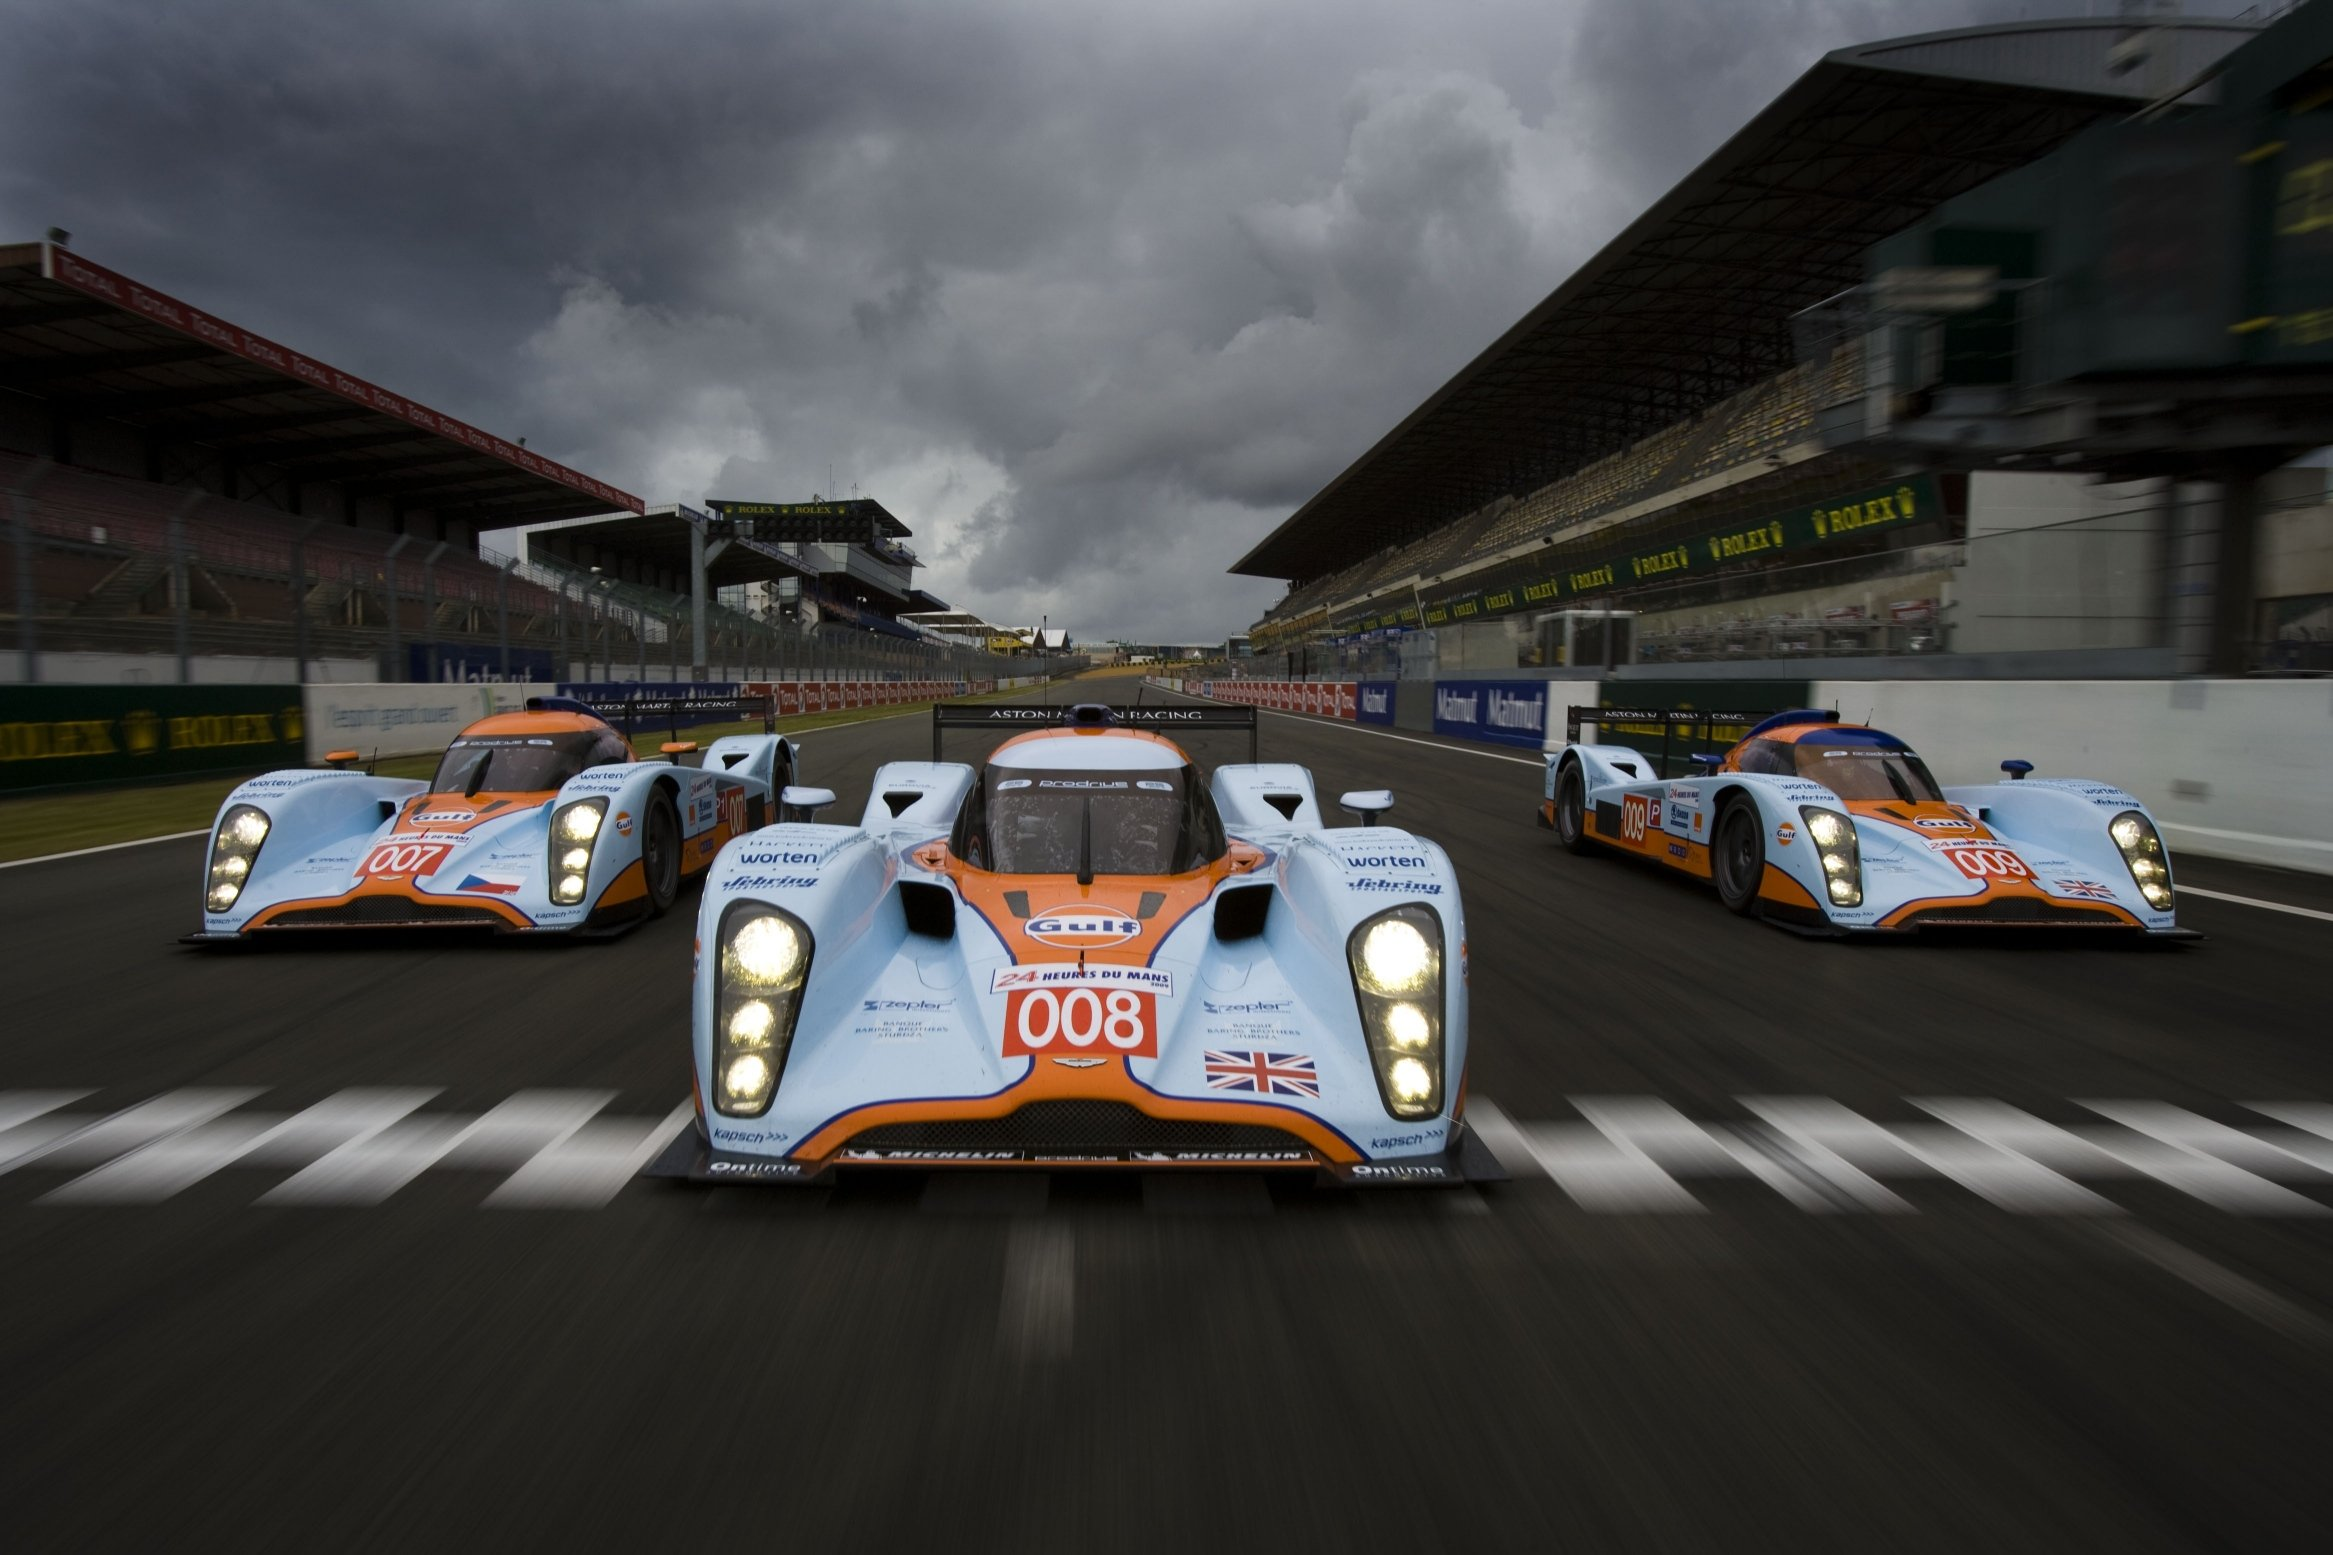 Le Mans Wallpaper Wallpapersafari